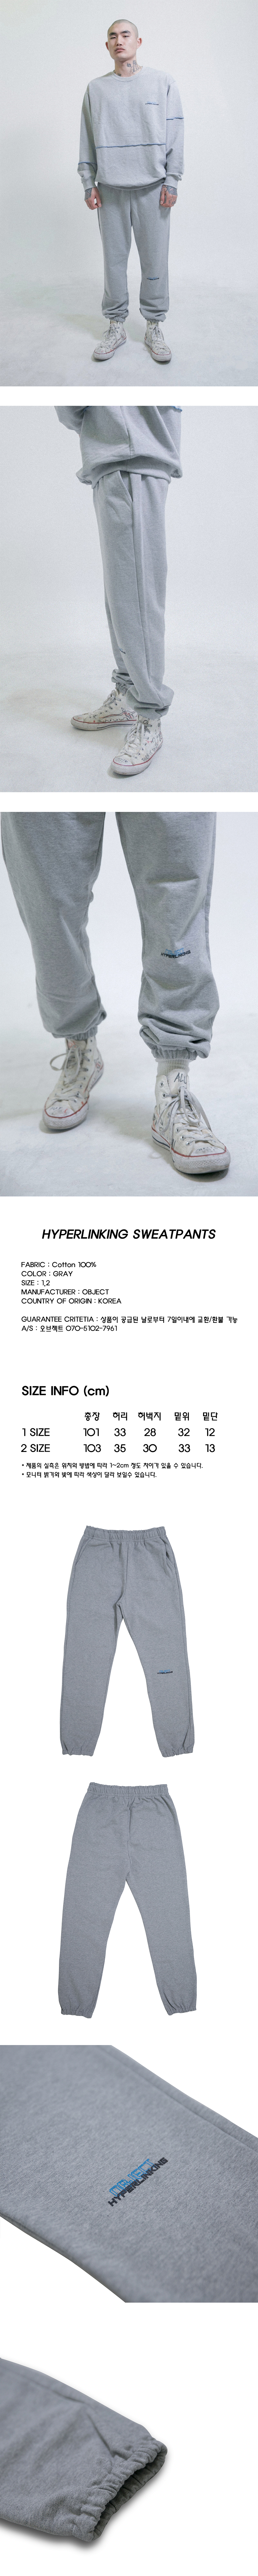 HYPERLINKING SWEATPANTS (GRAY).jpg